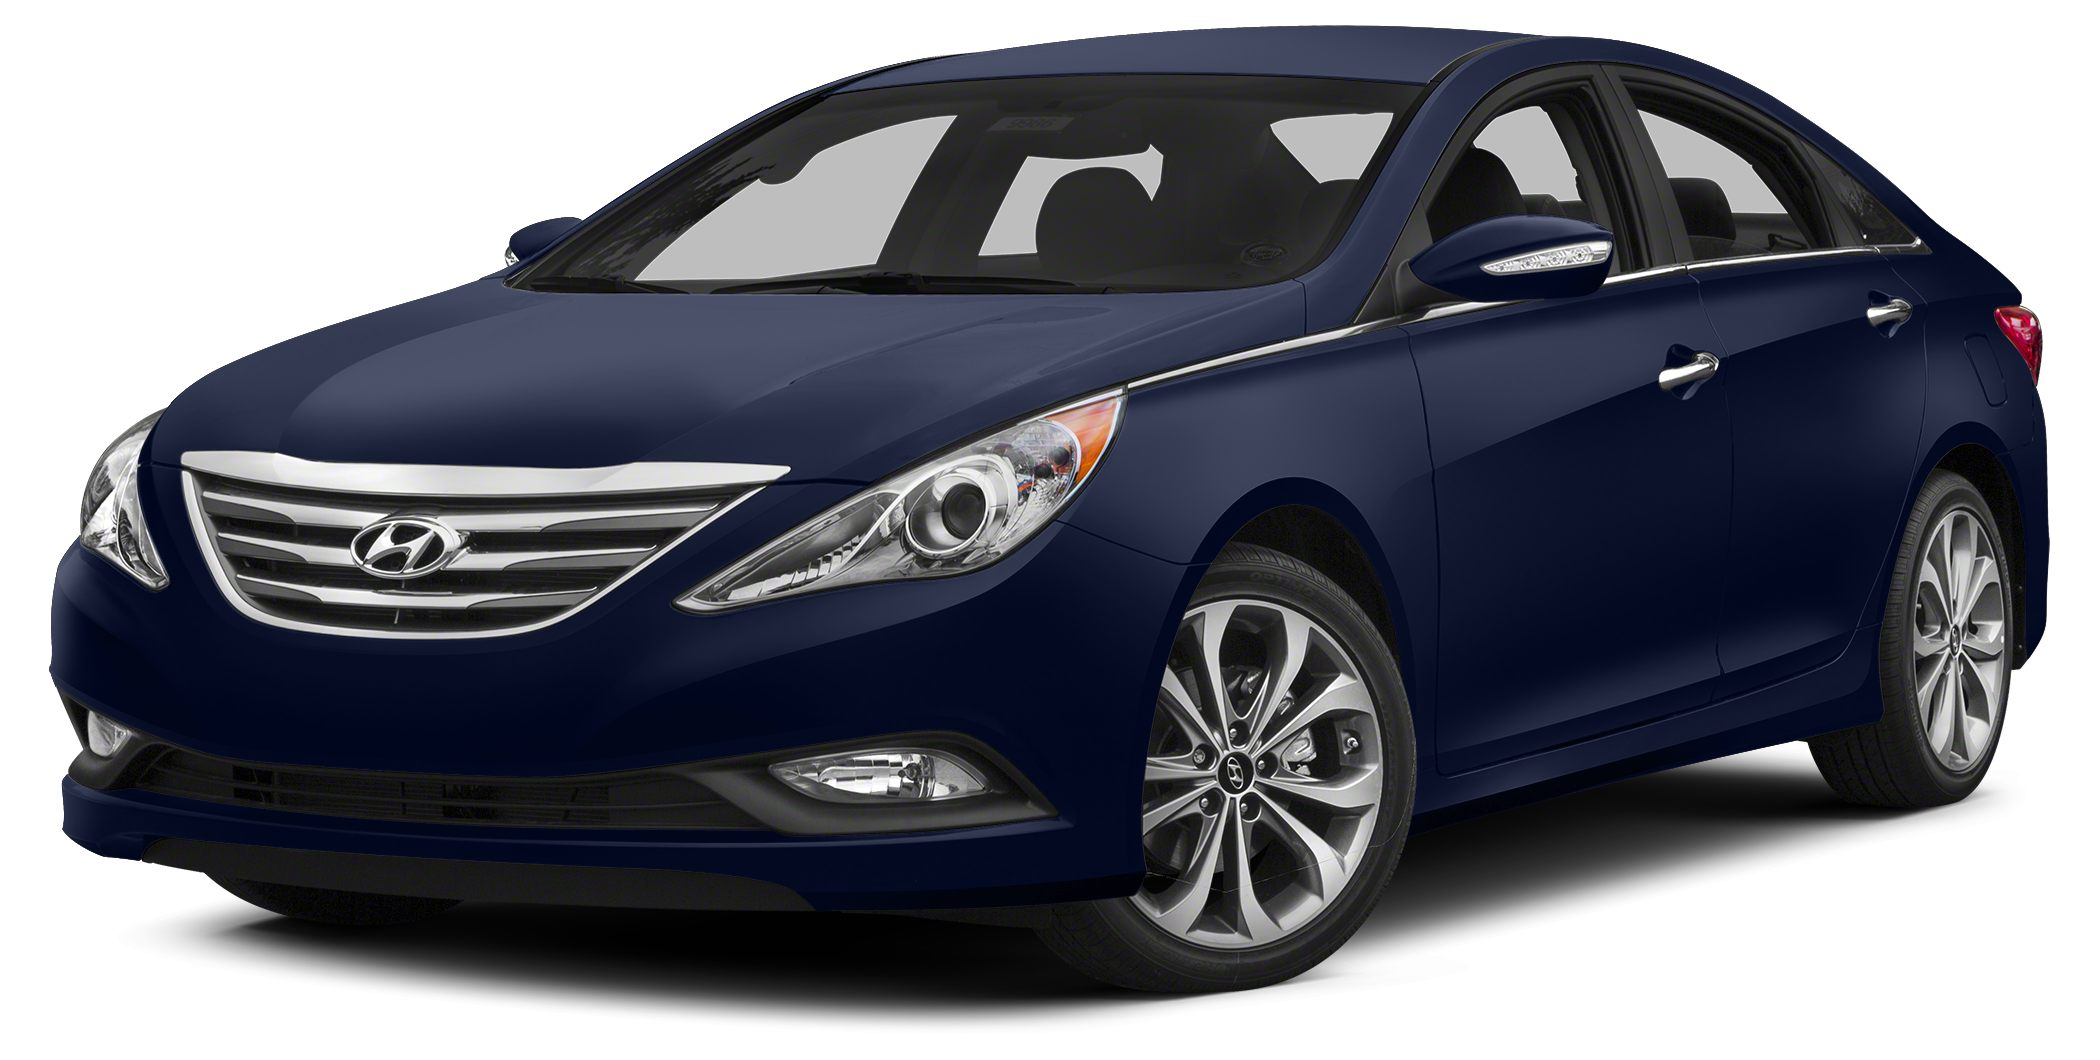 2014 Hyundai Sonata GLS HYUNDAI CERTIFIED - JUST 15K MILES - One Owner Sonata comes with full powe